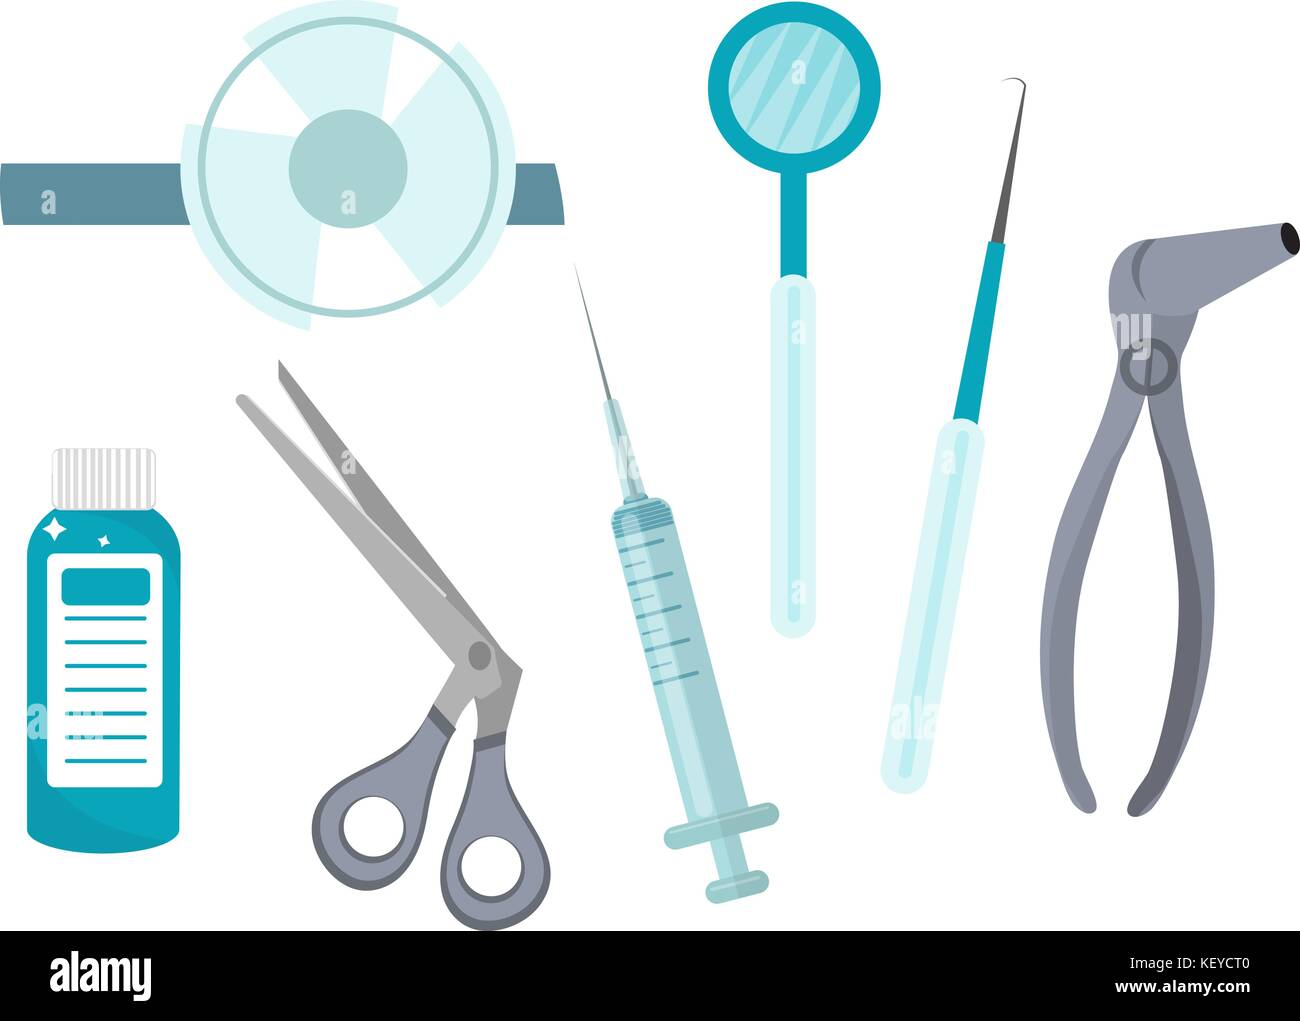 Otolaryngology tools icons, flat style. ENT equipment, isolated on white background. Medicine concept. Vector illustration. - Stock Image